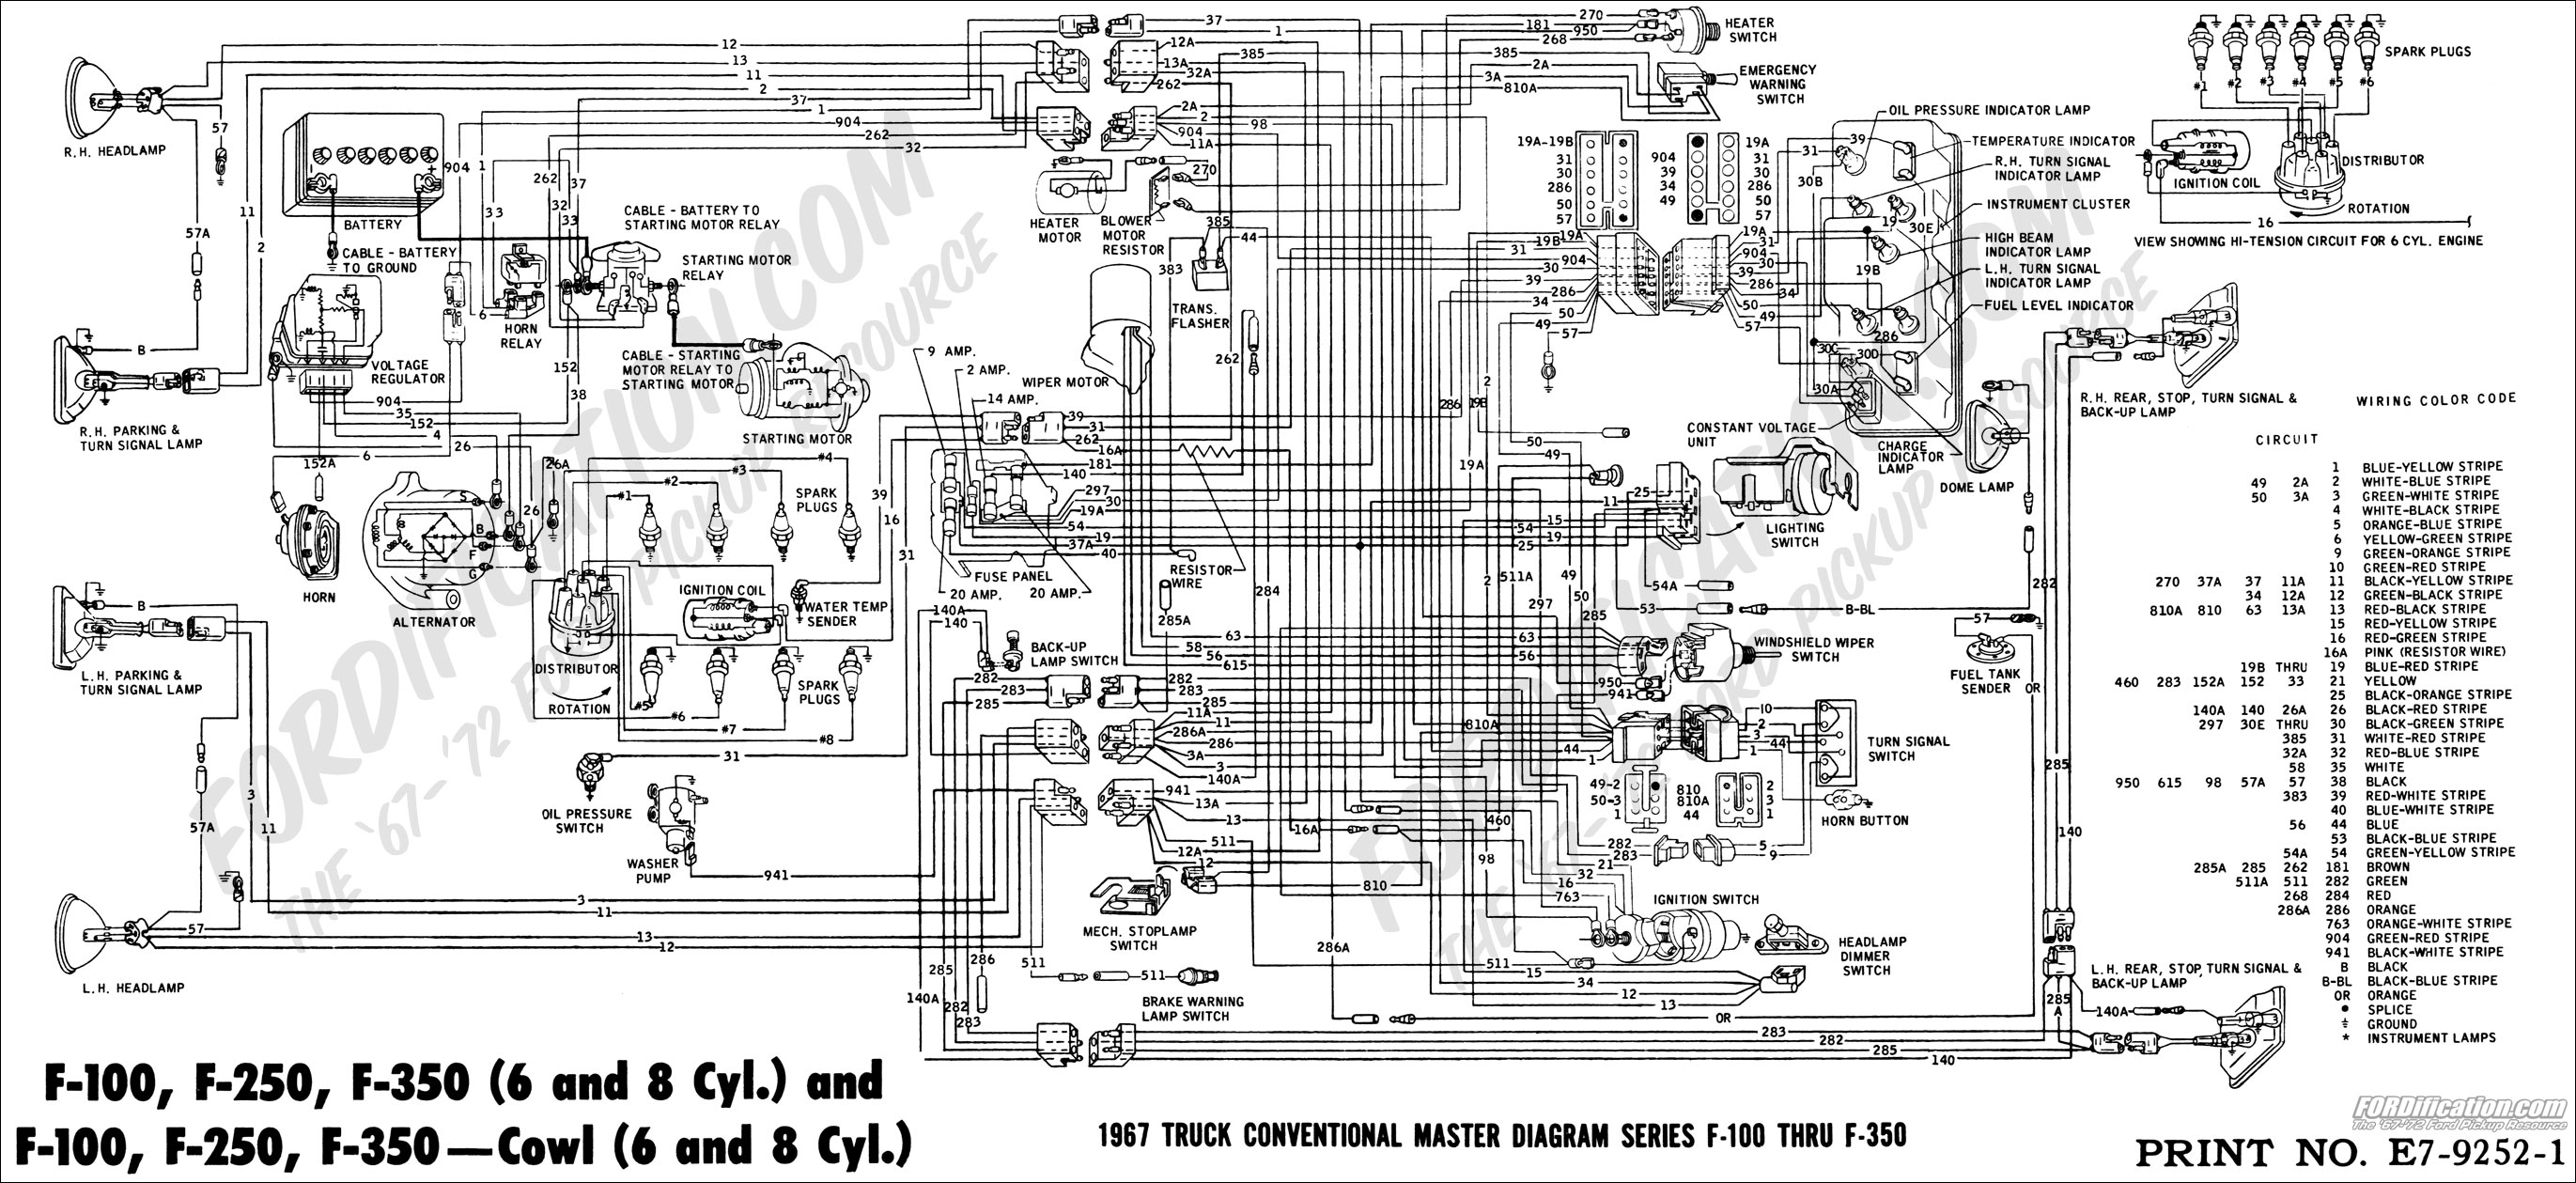 1980 Ford Truck Wiring Diagram Data 1973 Chevelle F250 Great Installation Of U2022 1979 F100